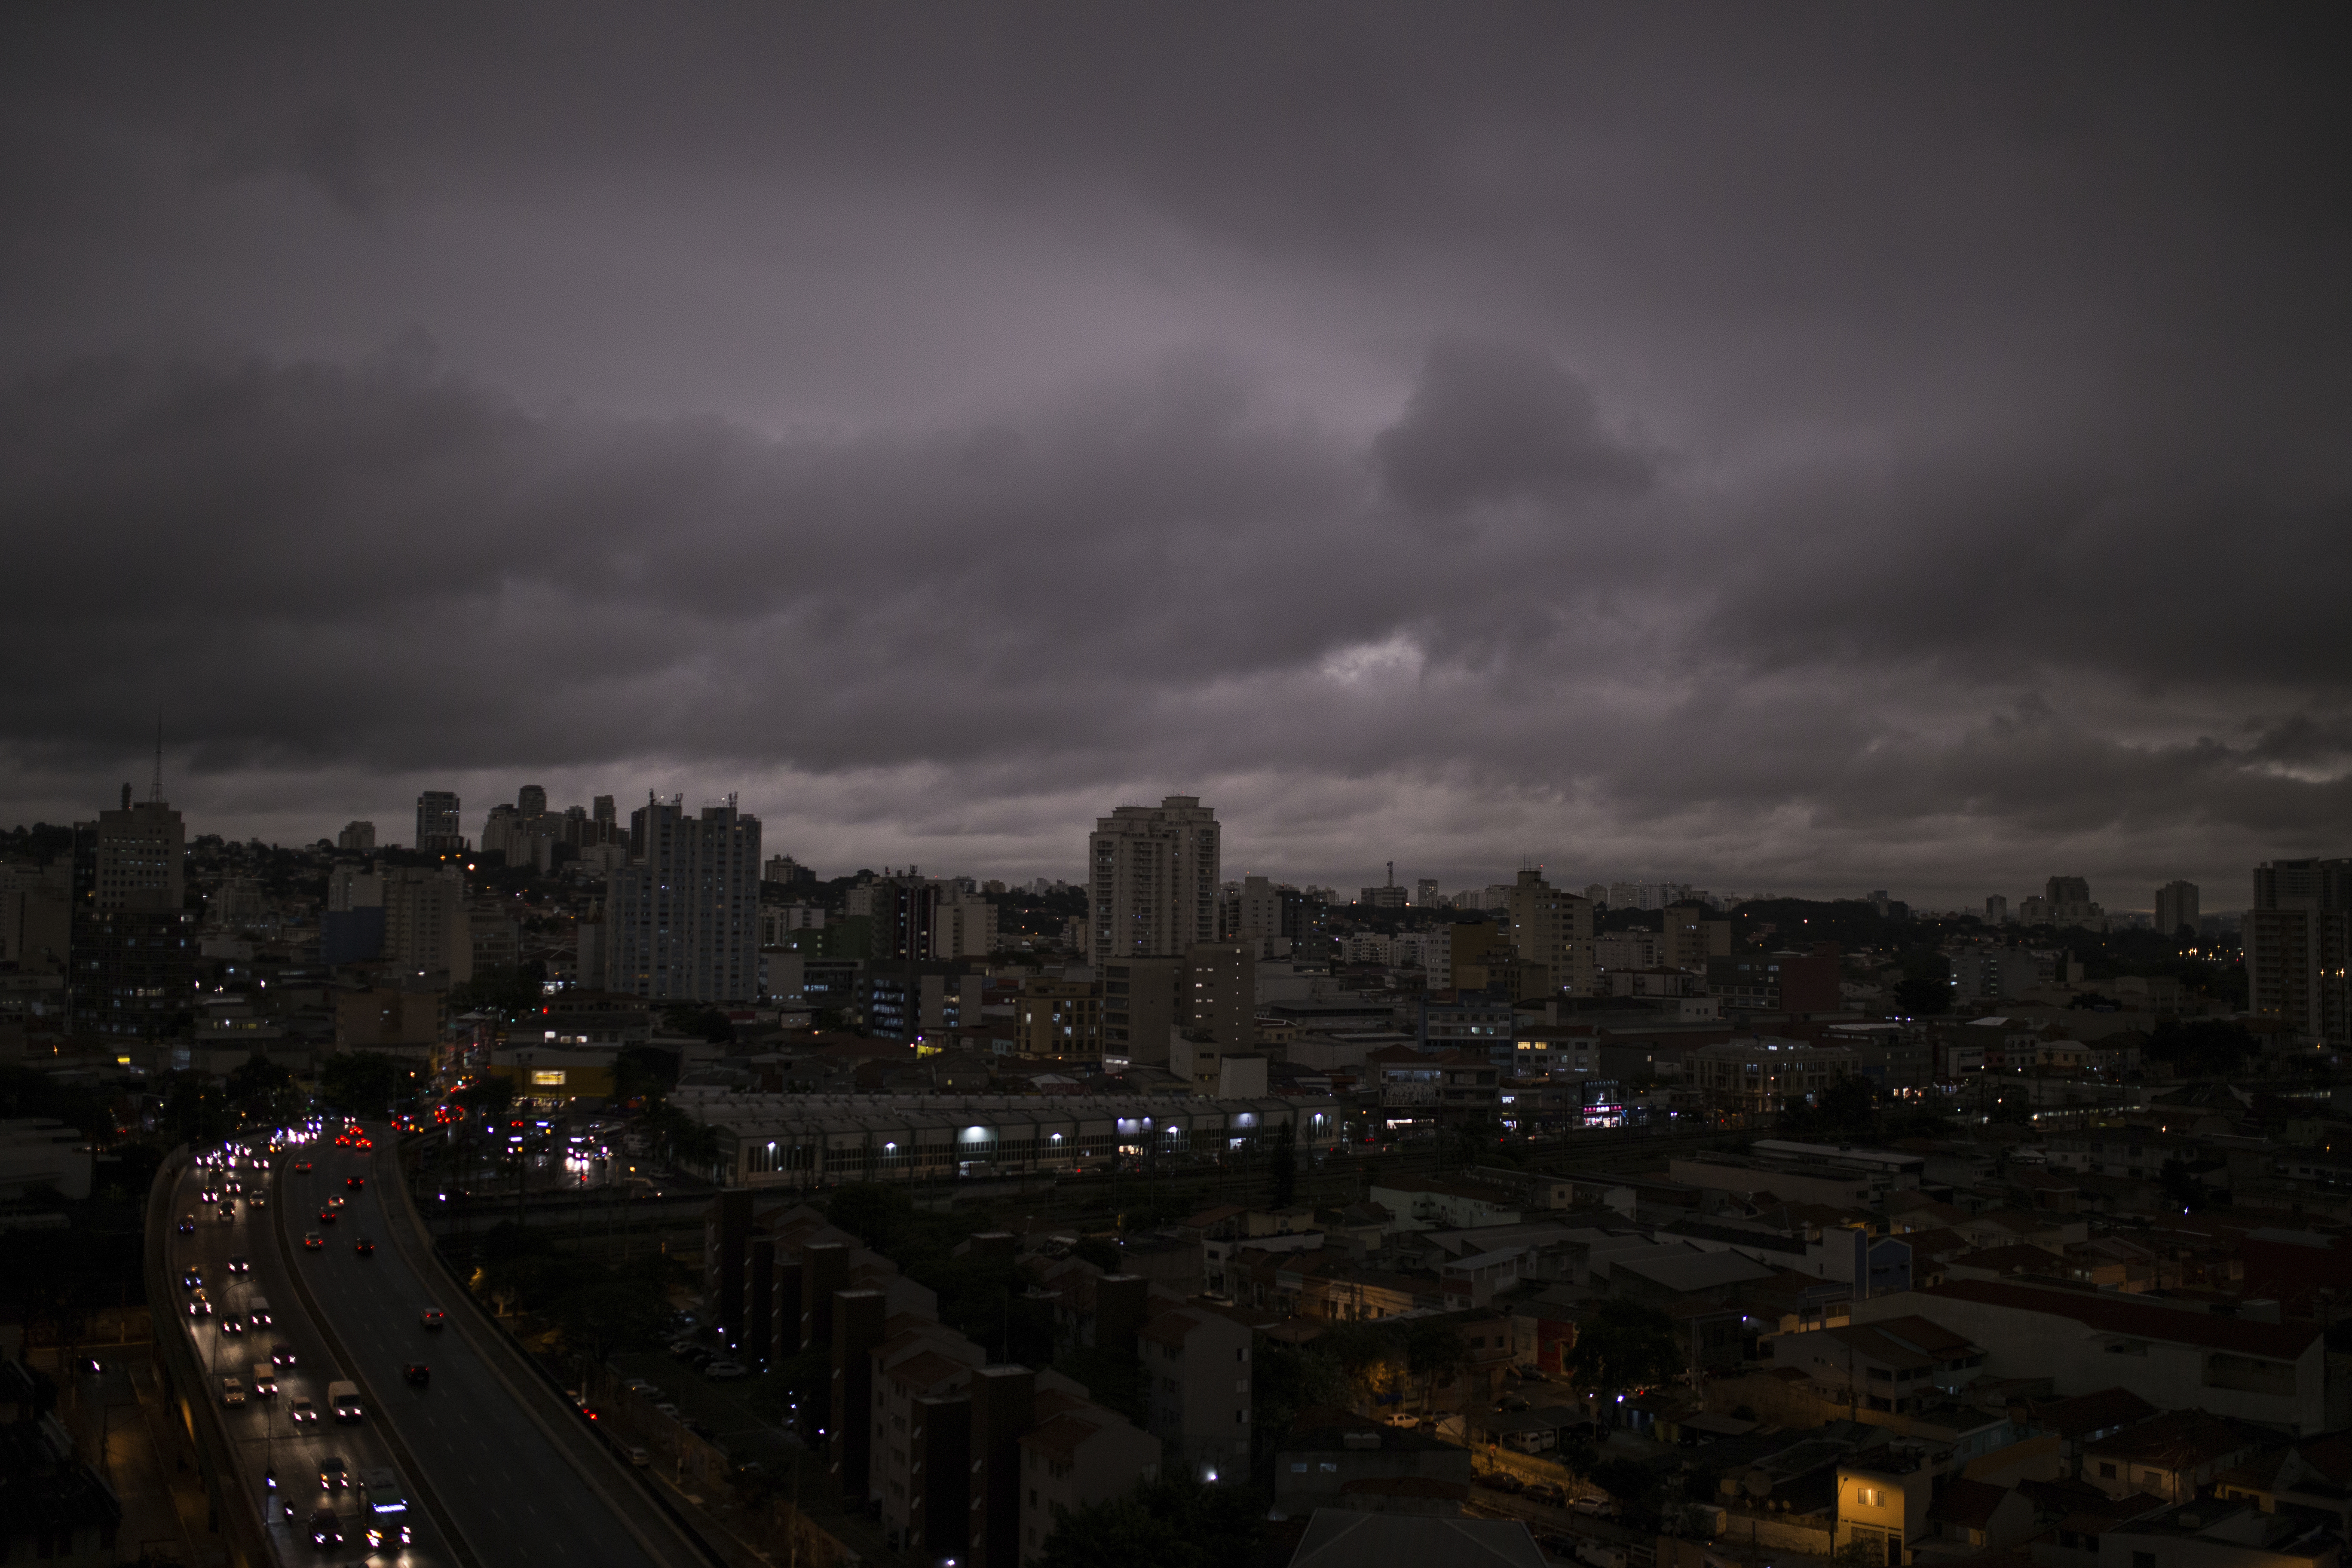 Darkened skies in Sao Paulo, seen on Monday, August 19. Residents of this metropolis of millions recently reported black rain. Studies by two universities confirmed that the rainwater contains fire residues.